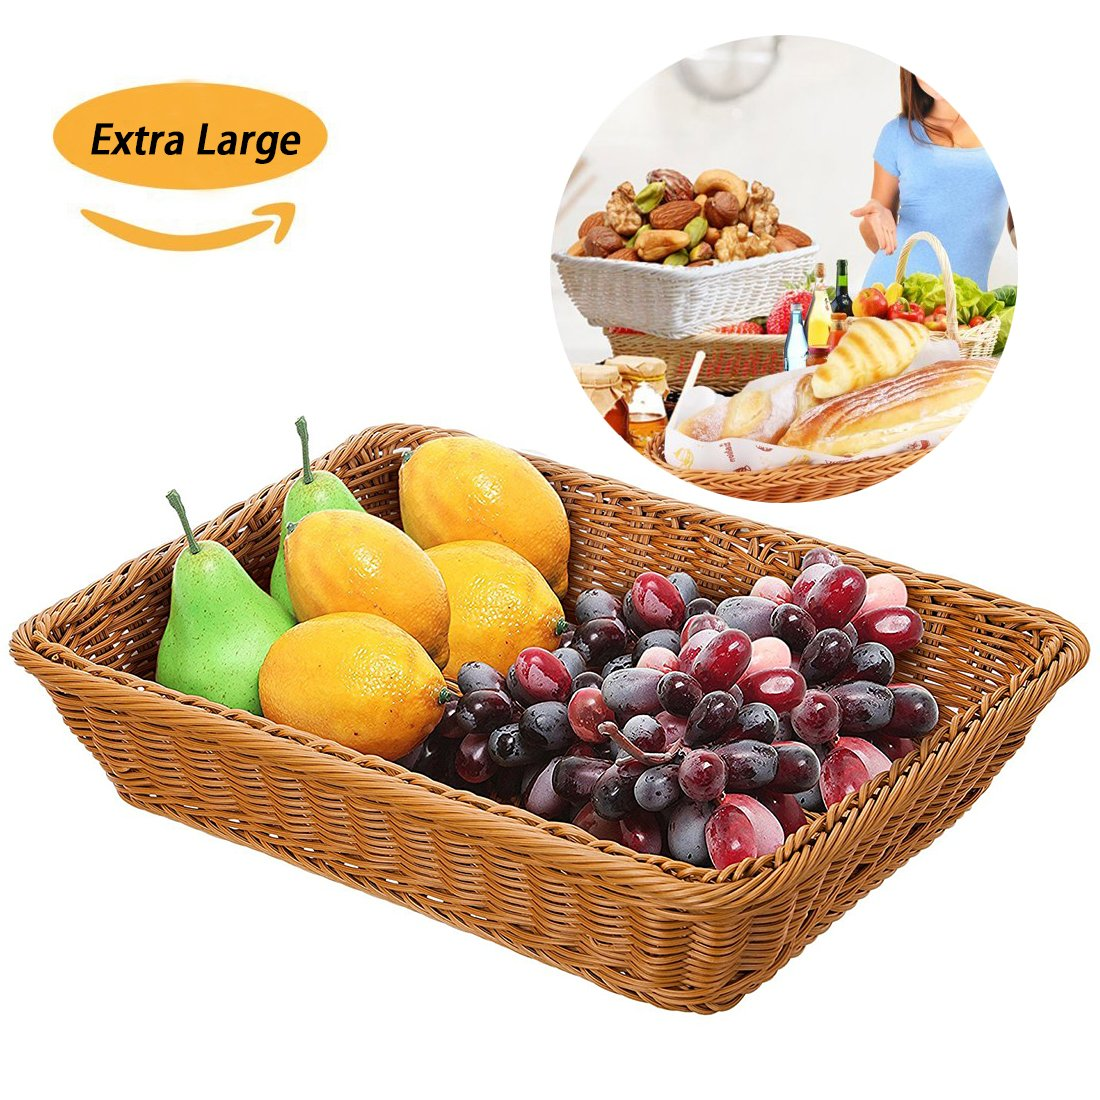 Extra Large Poly-Wicker Bread Basket Rectangle Imitation Rattan for Food Serving Restaurant Kitchen Coffee Table Diplay Decor Baskets Fruit Snacks Container,(16'' x 12'' x 4'') Brown